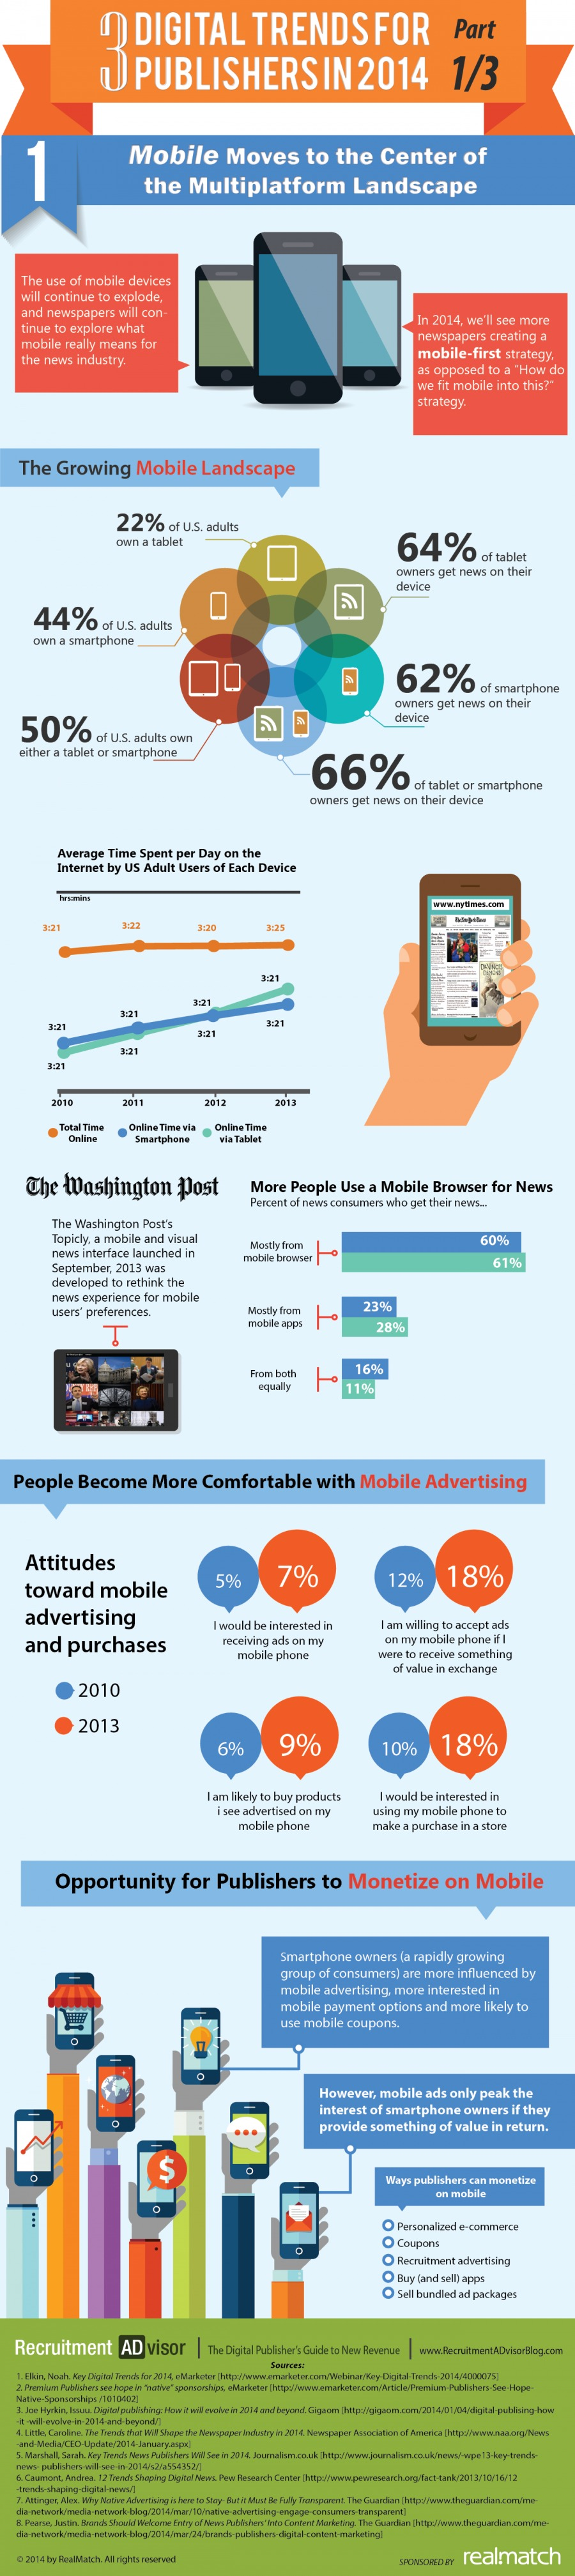 3-Digital-Trends-for-Publishers-in-2014-Mobile